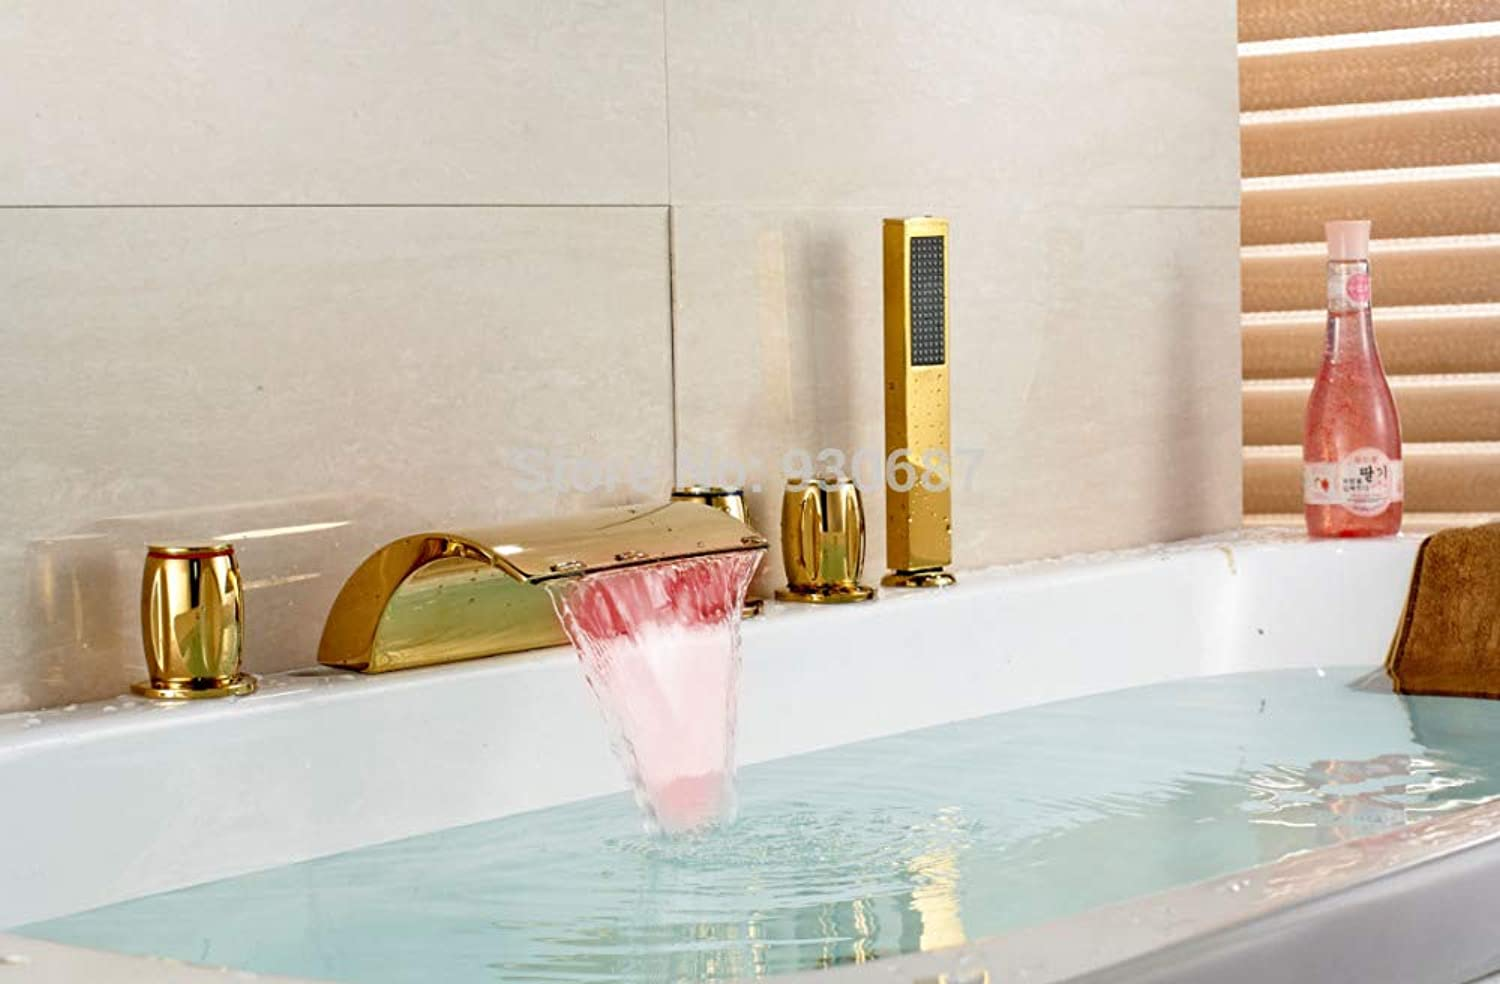 U-Enjoy Chandelier Plate Led gold Bathtub Three Top Quality Handles Faucet Centerset Mixer Tap New Free Shipping